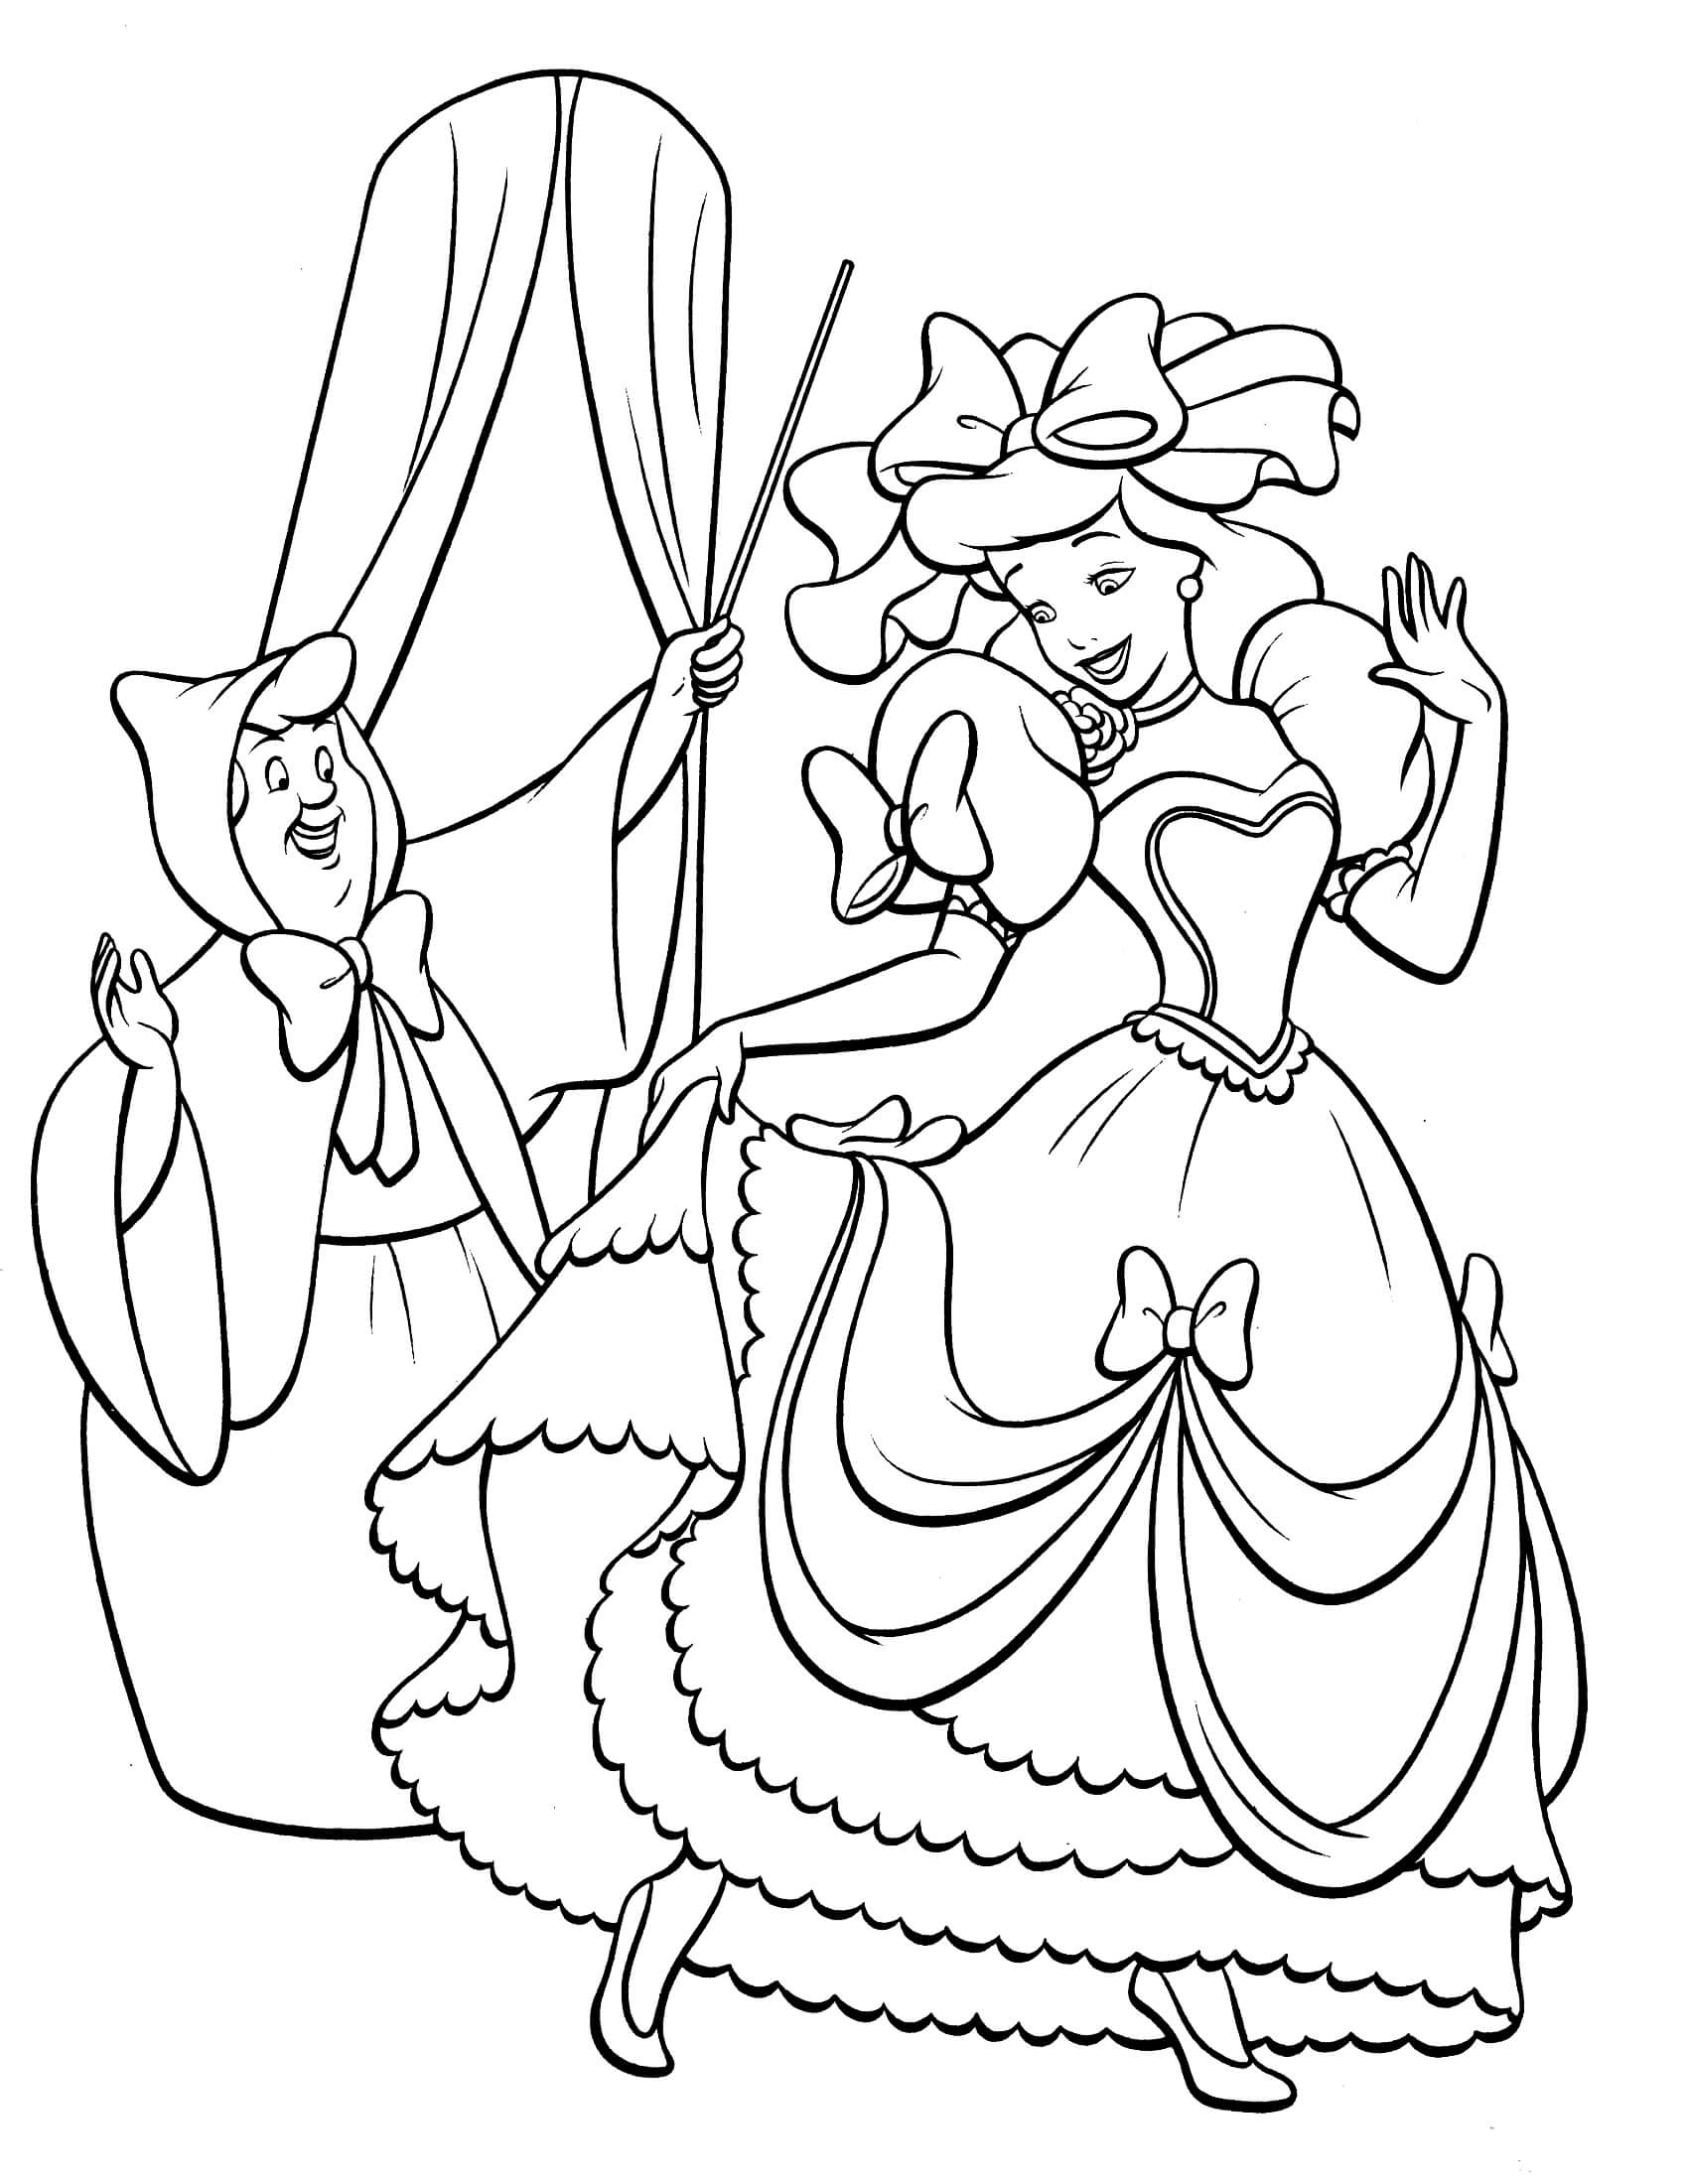 coloring pages of cinderella 30 free printable cinderella coloring pages coloring cinderella pages of